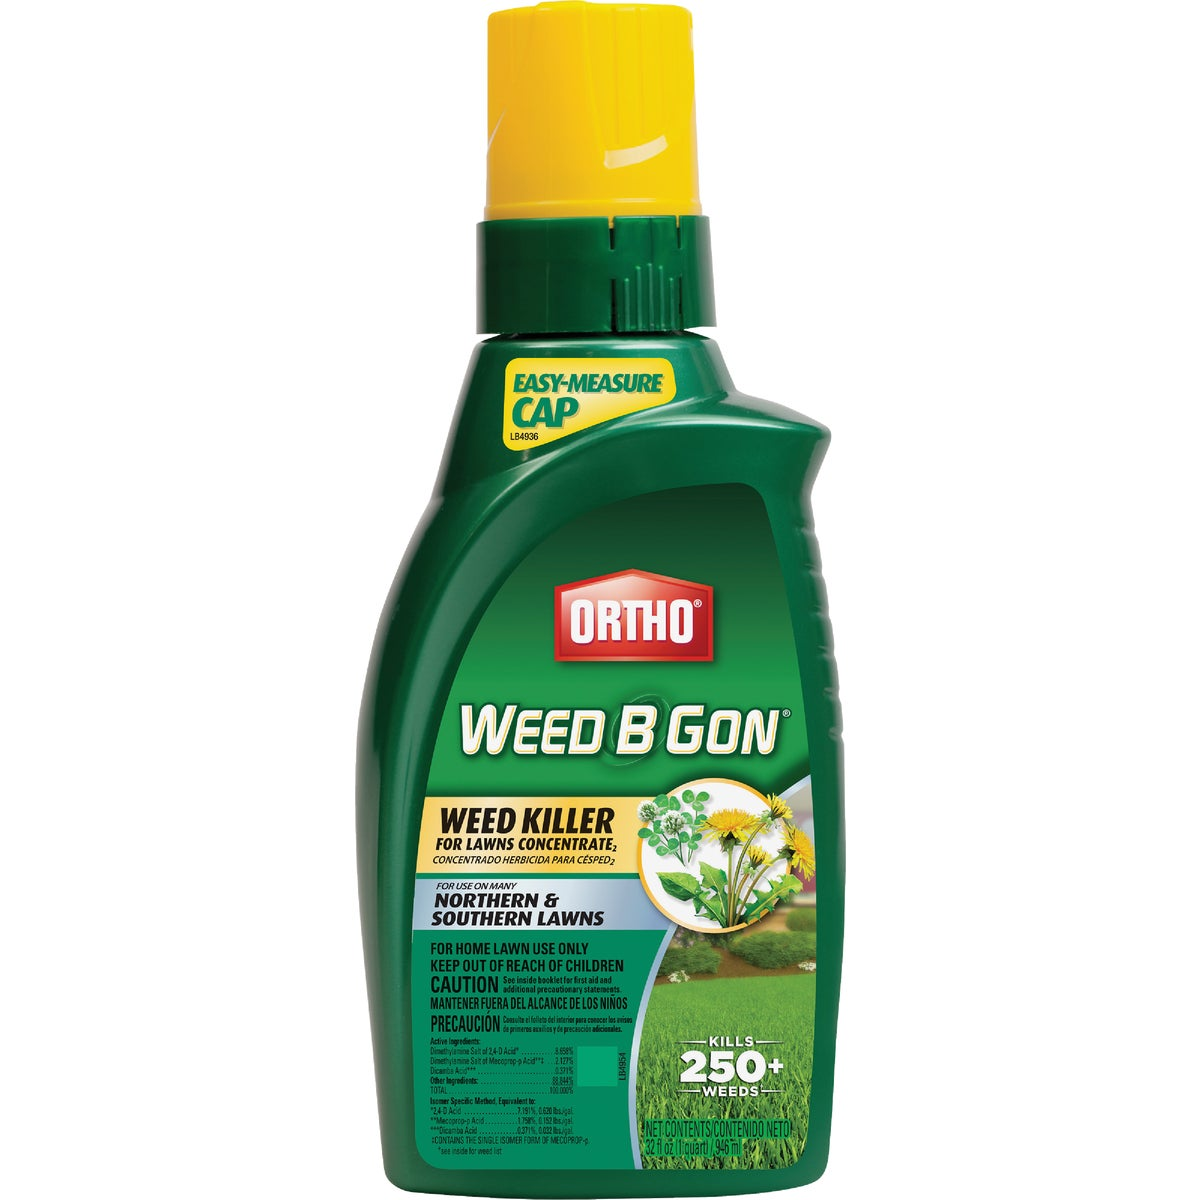 32OZ CONC WEED B GON - 0408010 by Scotts Company